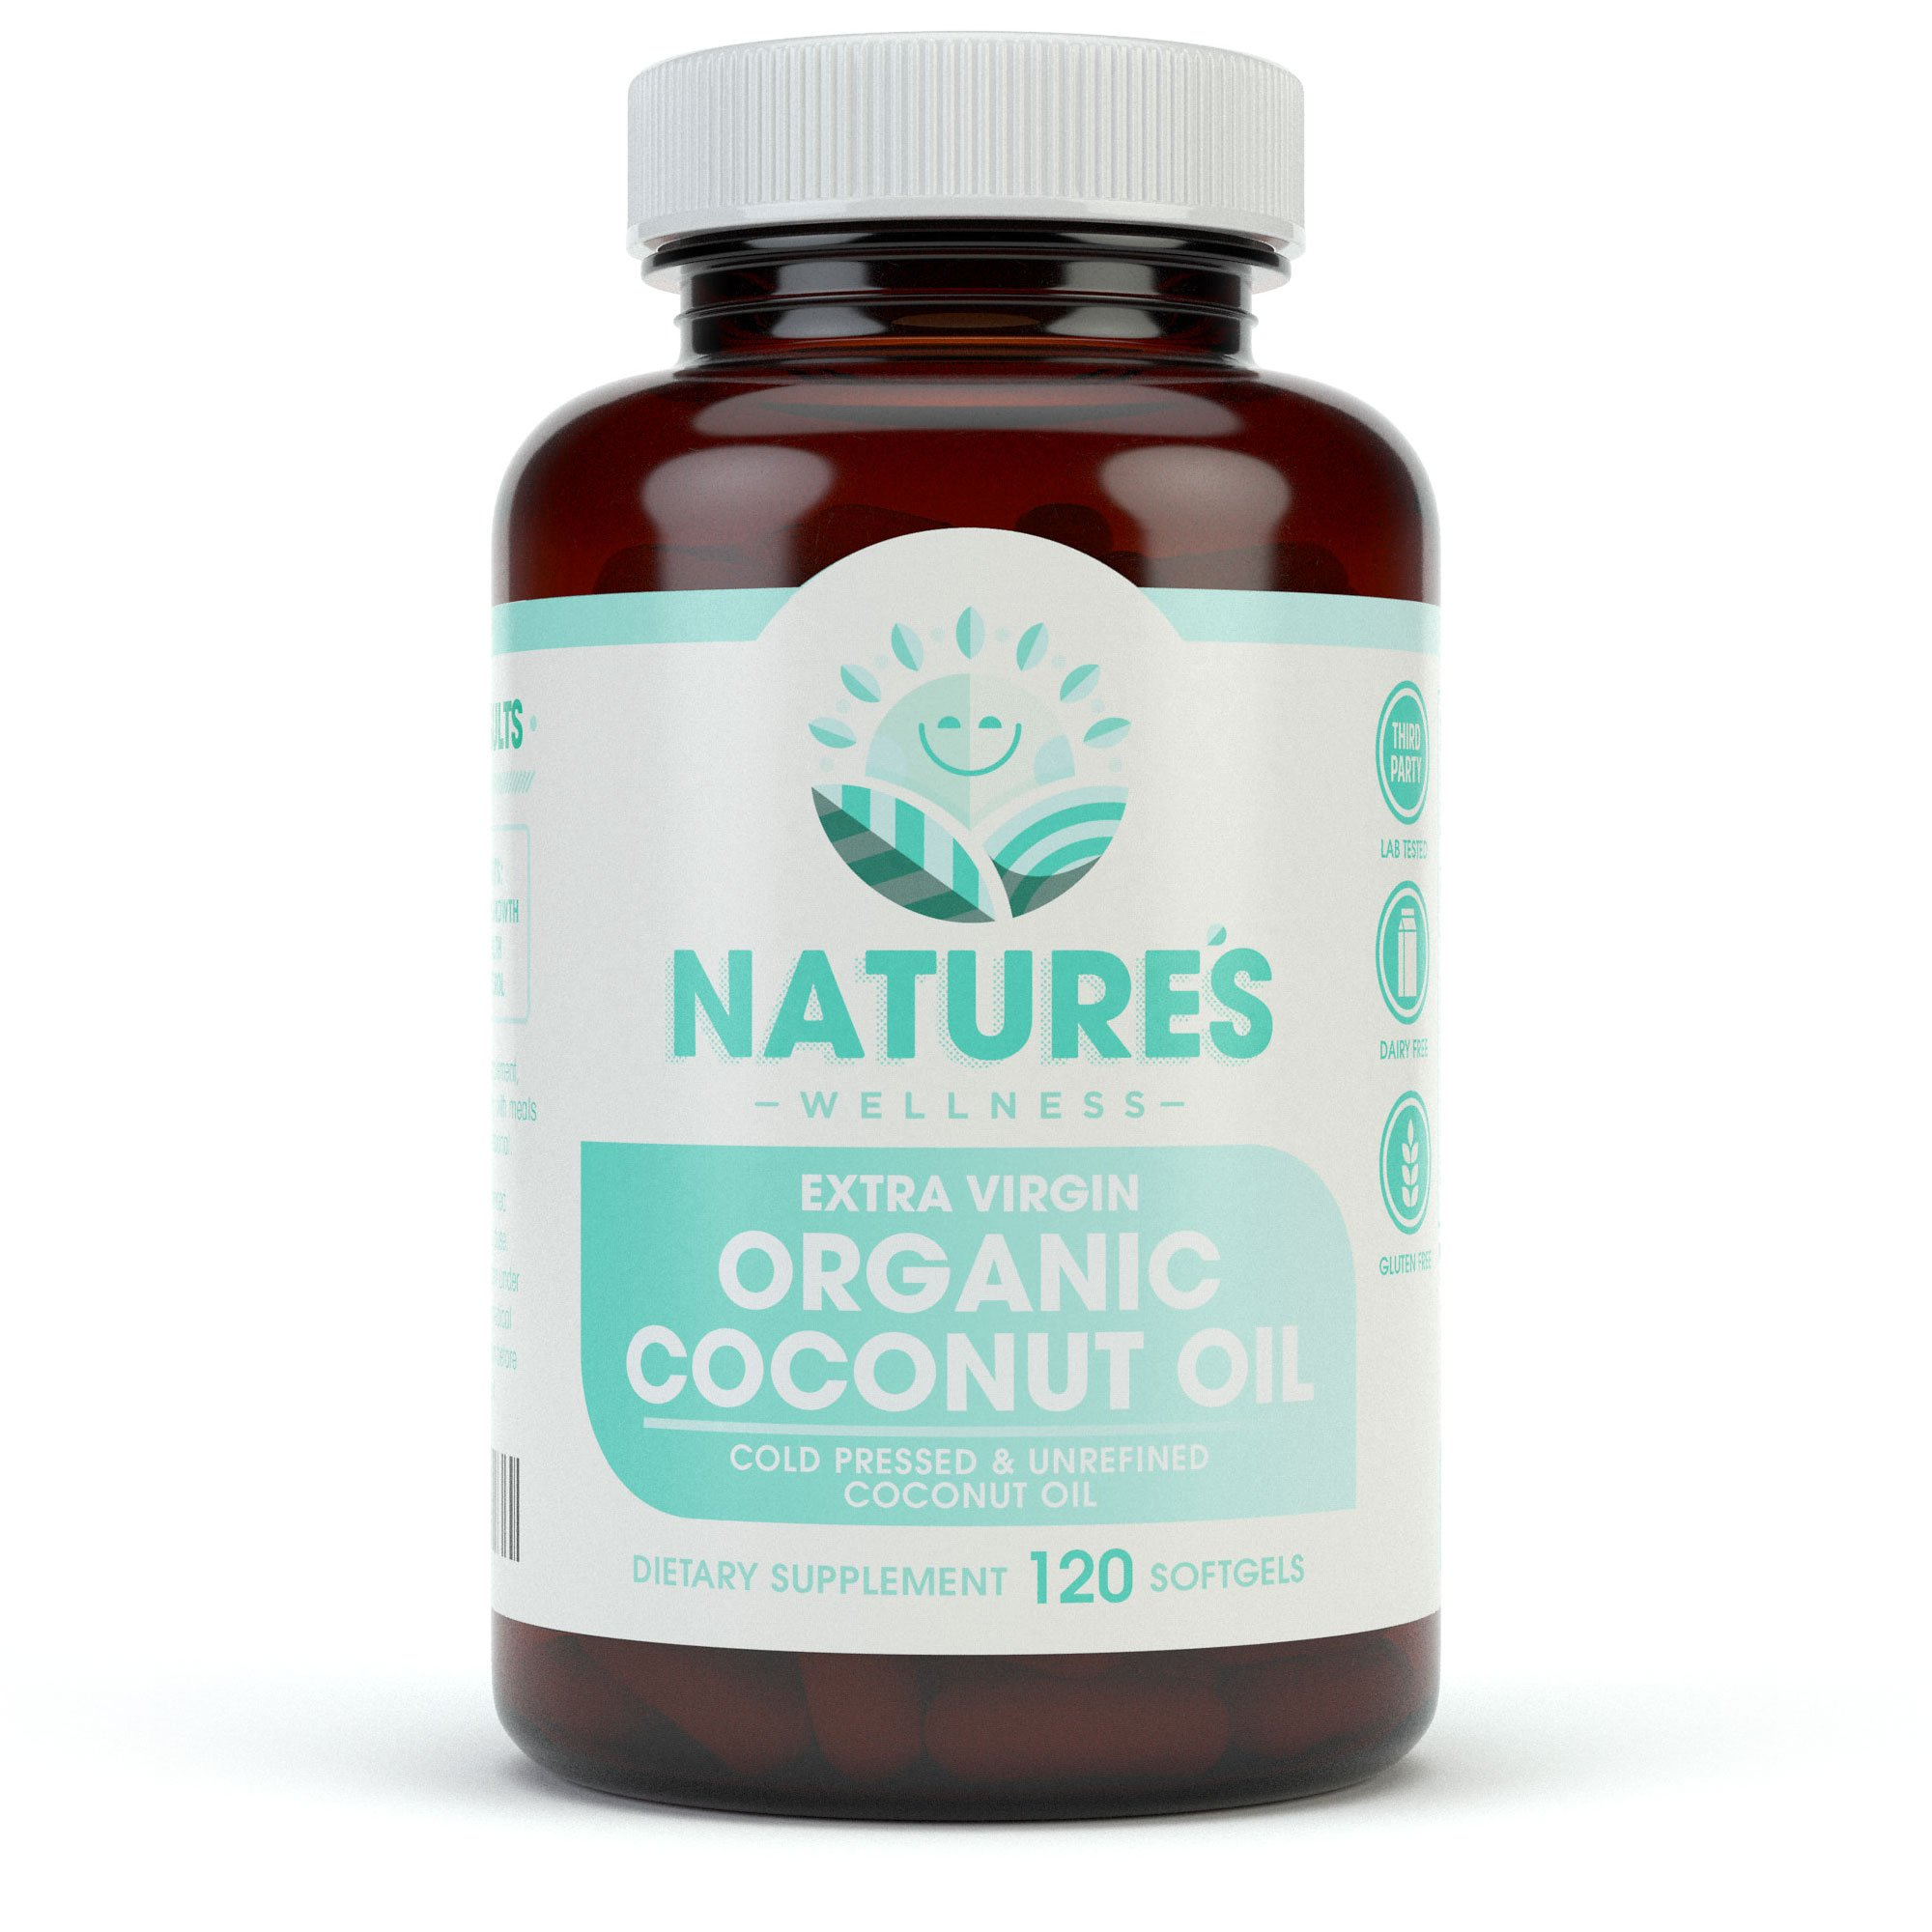 Organic Coconut Oil 2000mg - Highest Grade Extra Virgin Coconut Oil for Skin, Healthy Weight Loss, Hair Growth. Cold Pressed & Non-GMO Coconut Oil Capsules. Unrefined Coconut Oil Rich in MCFA and MCT by Natures Wellness